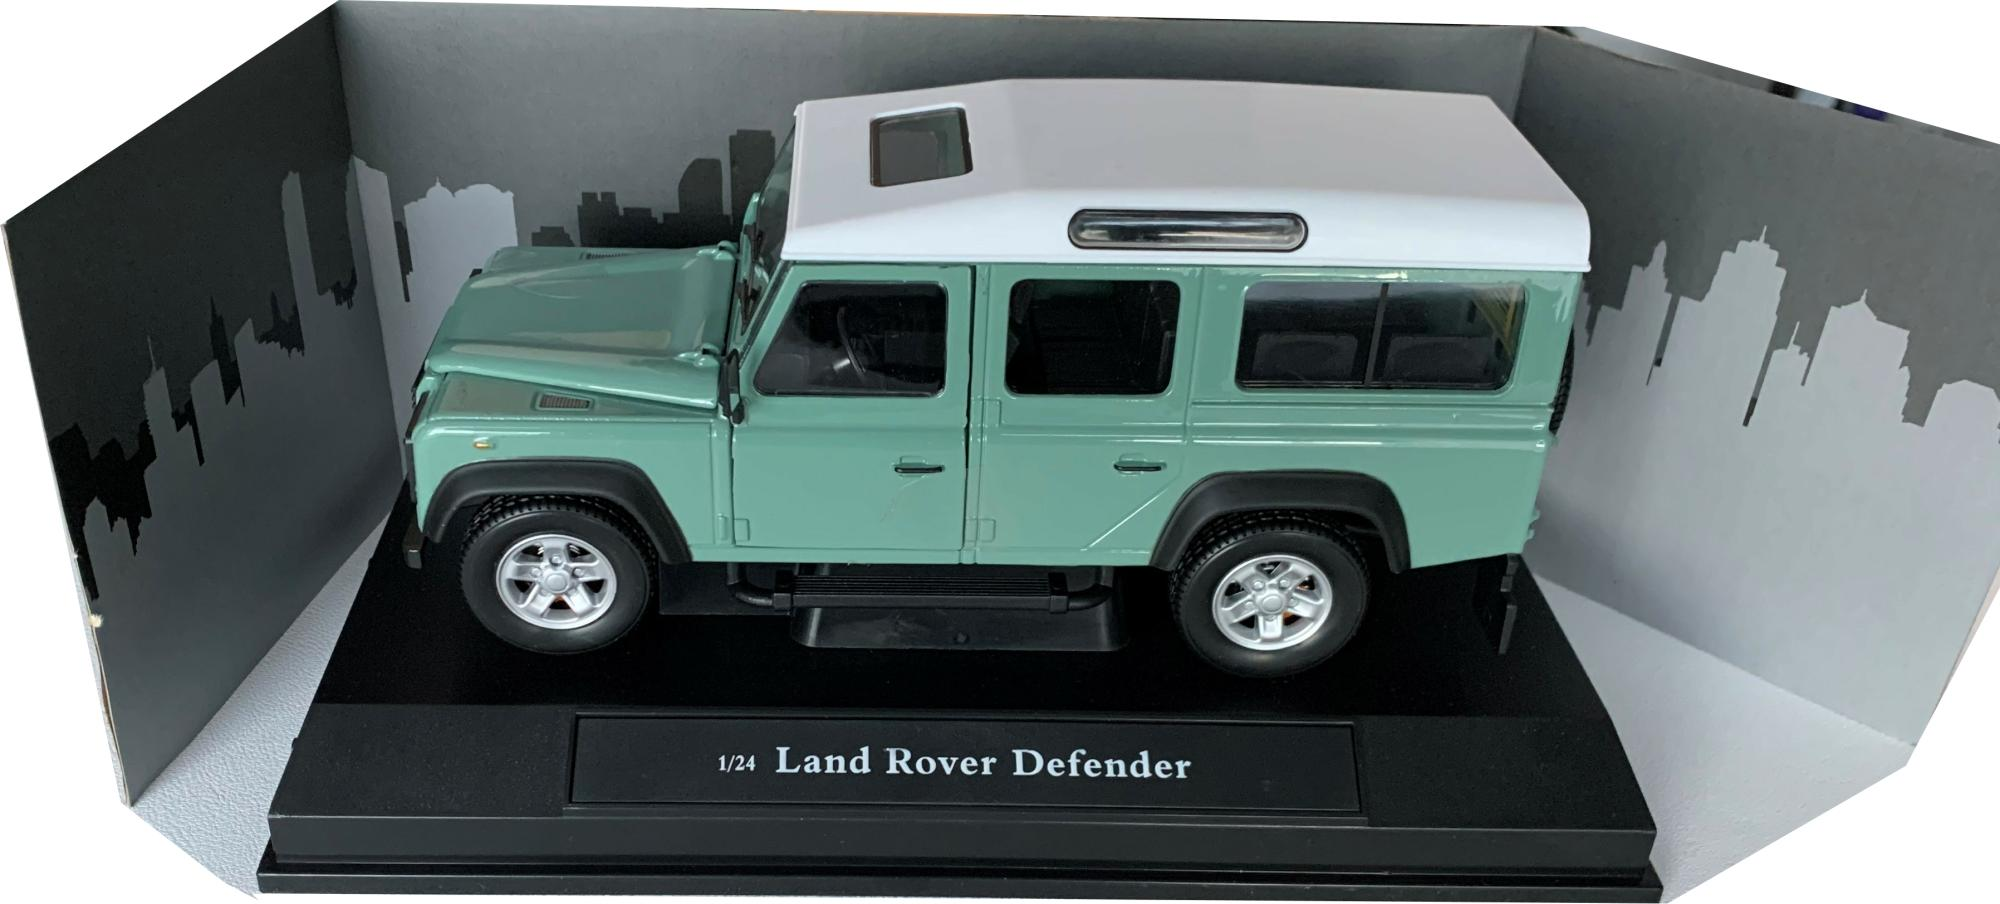 Land rover defender in pale green 1:24 scale diecast model from cararama